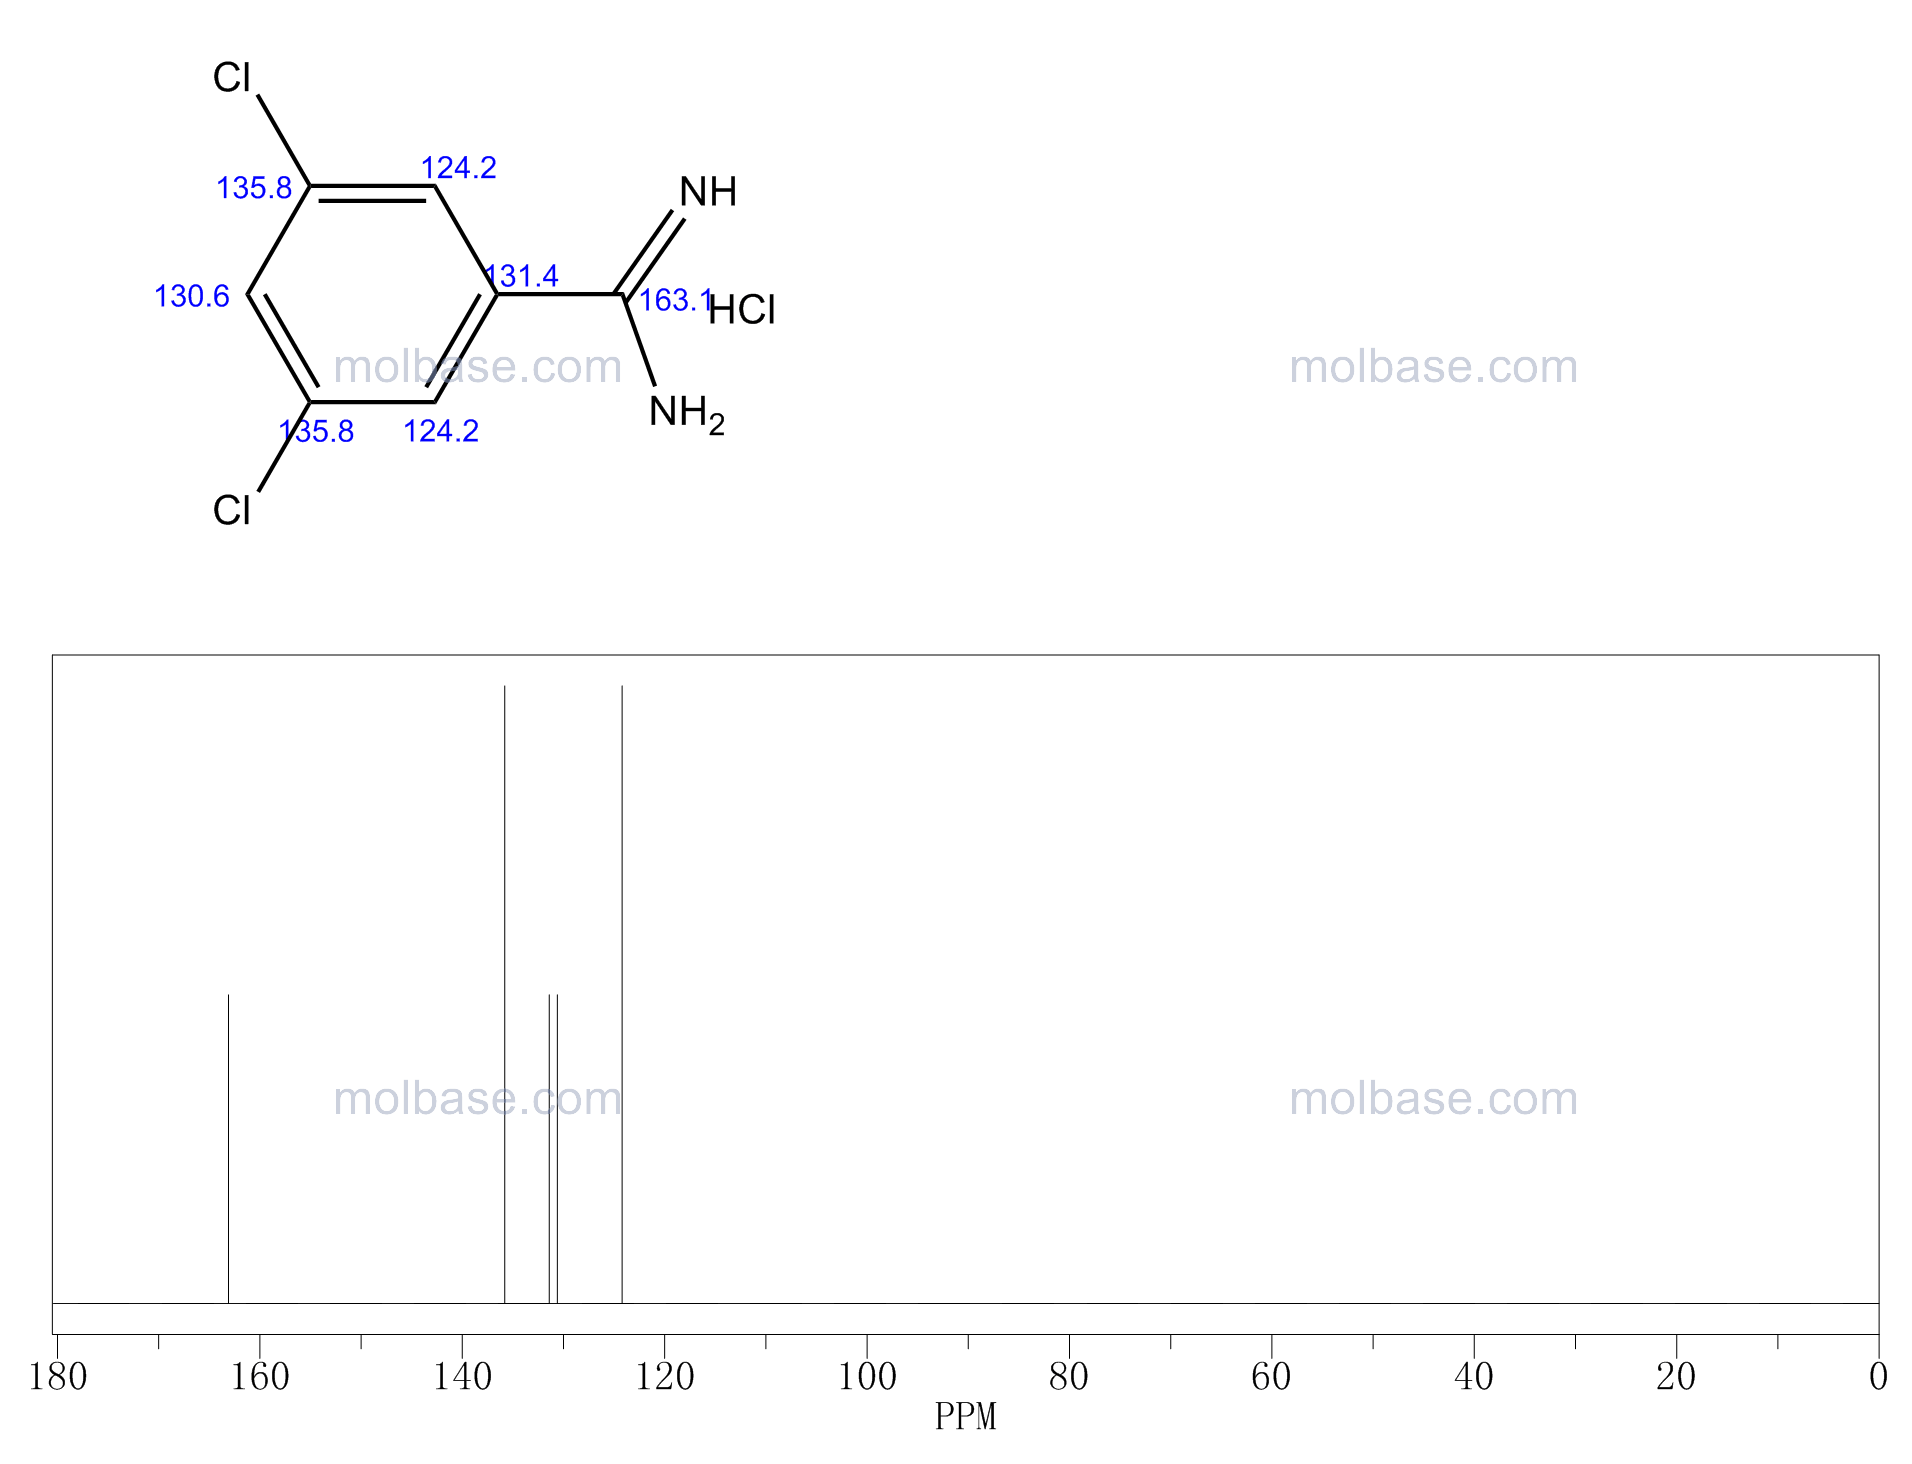 3,5-dichlorobenzenecarboximidamide,hydrochloride NMR spectra analysis, Chemical CAS NO. 22978-61-6 NMR spectral analysis, 3,5-dichlorobenzenecarboximidamide,hydrochloride C-NMR spectrum